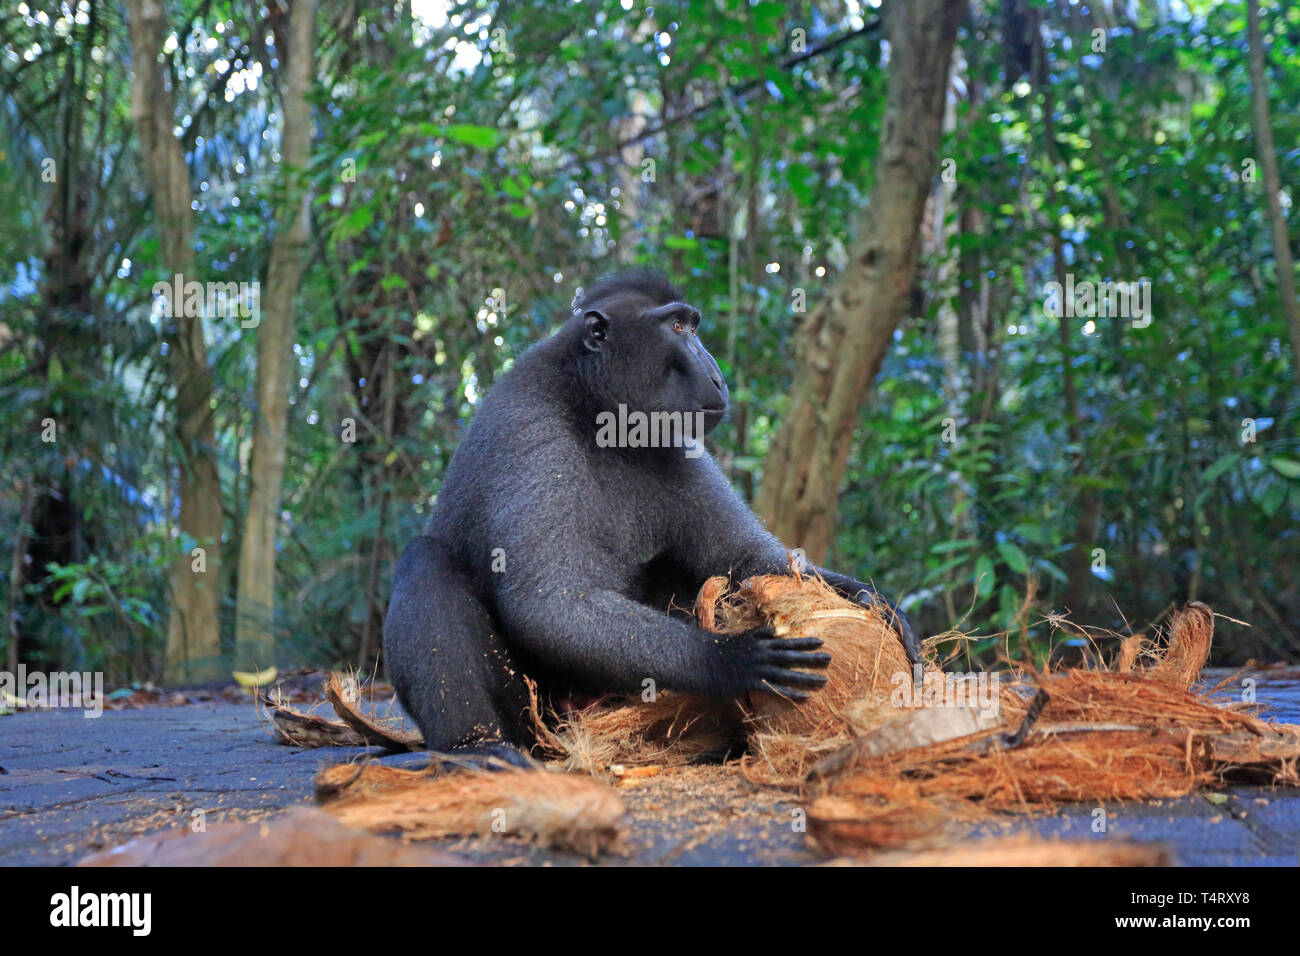 Crested Black Macaque opening a coconut in Sulawesi Indonesia - Stock Image